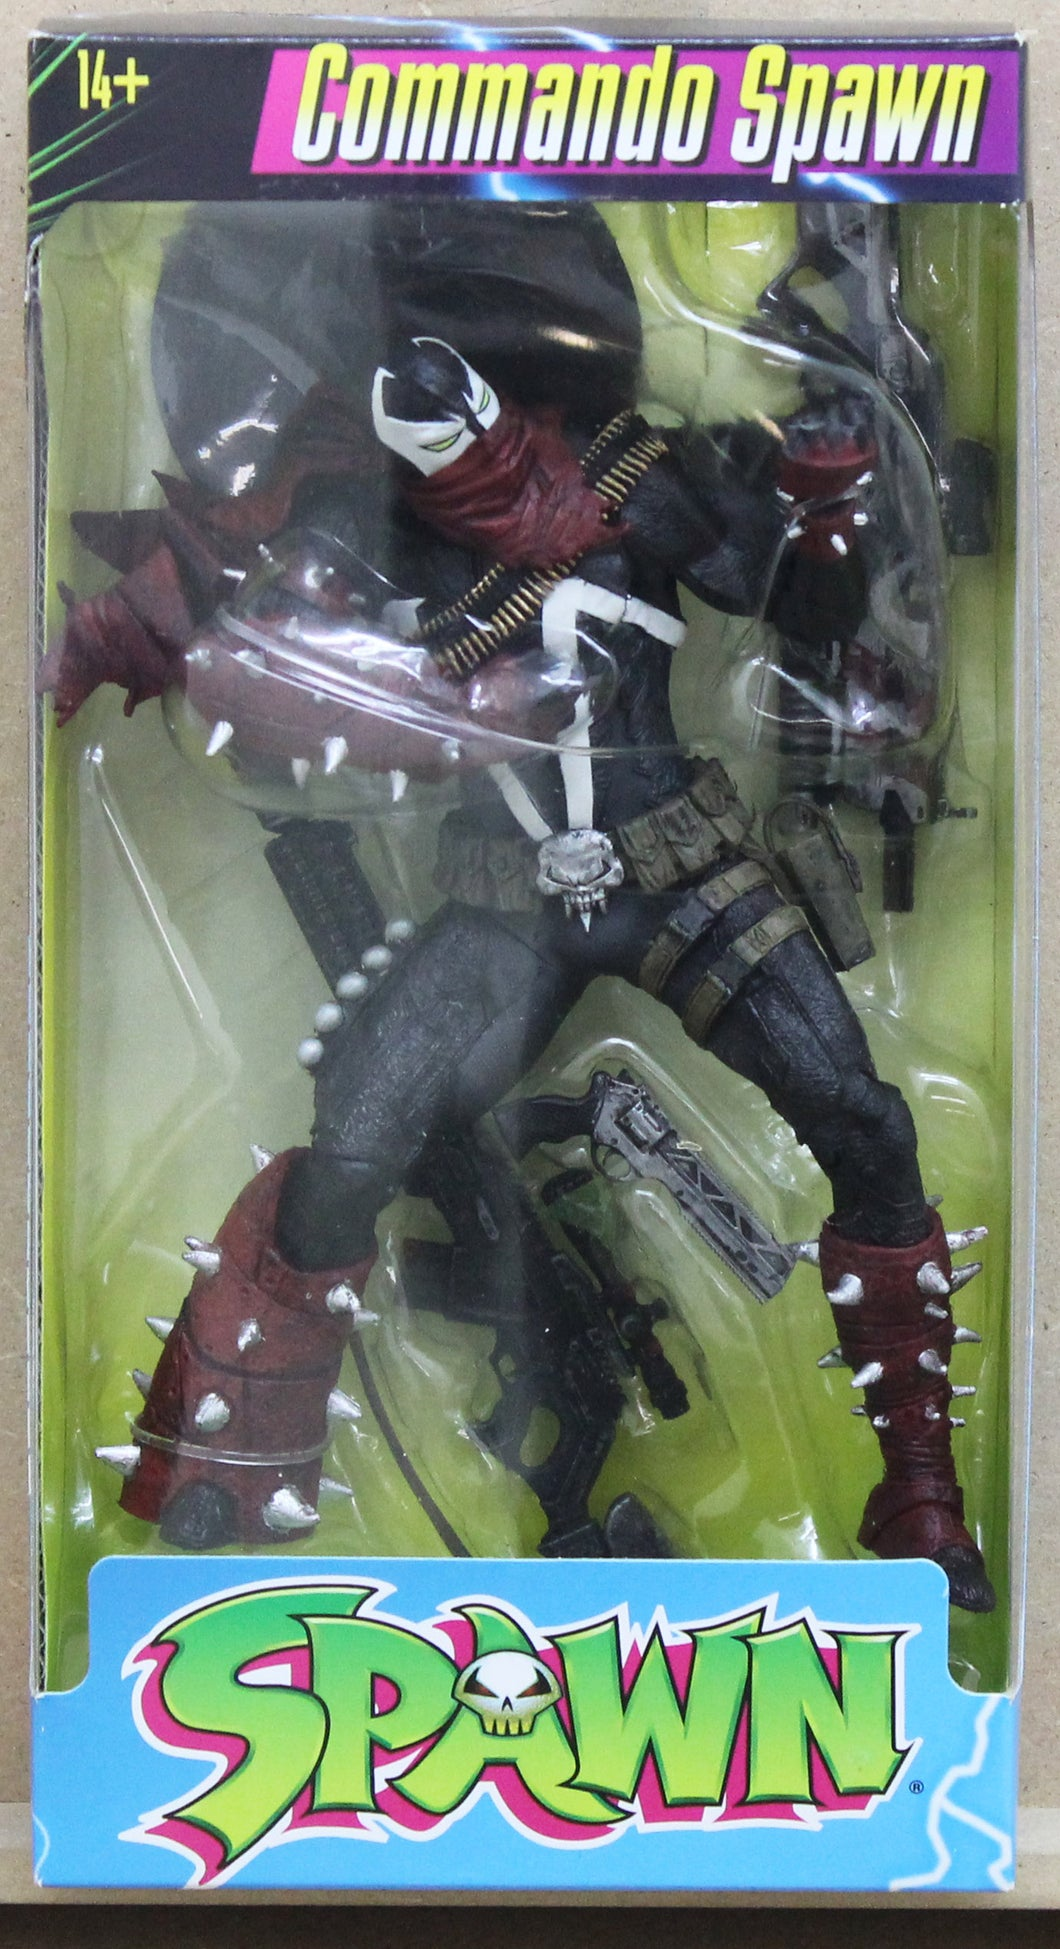 Spawn Ultra-Action Figures - Commando Spawn